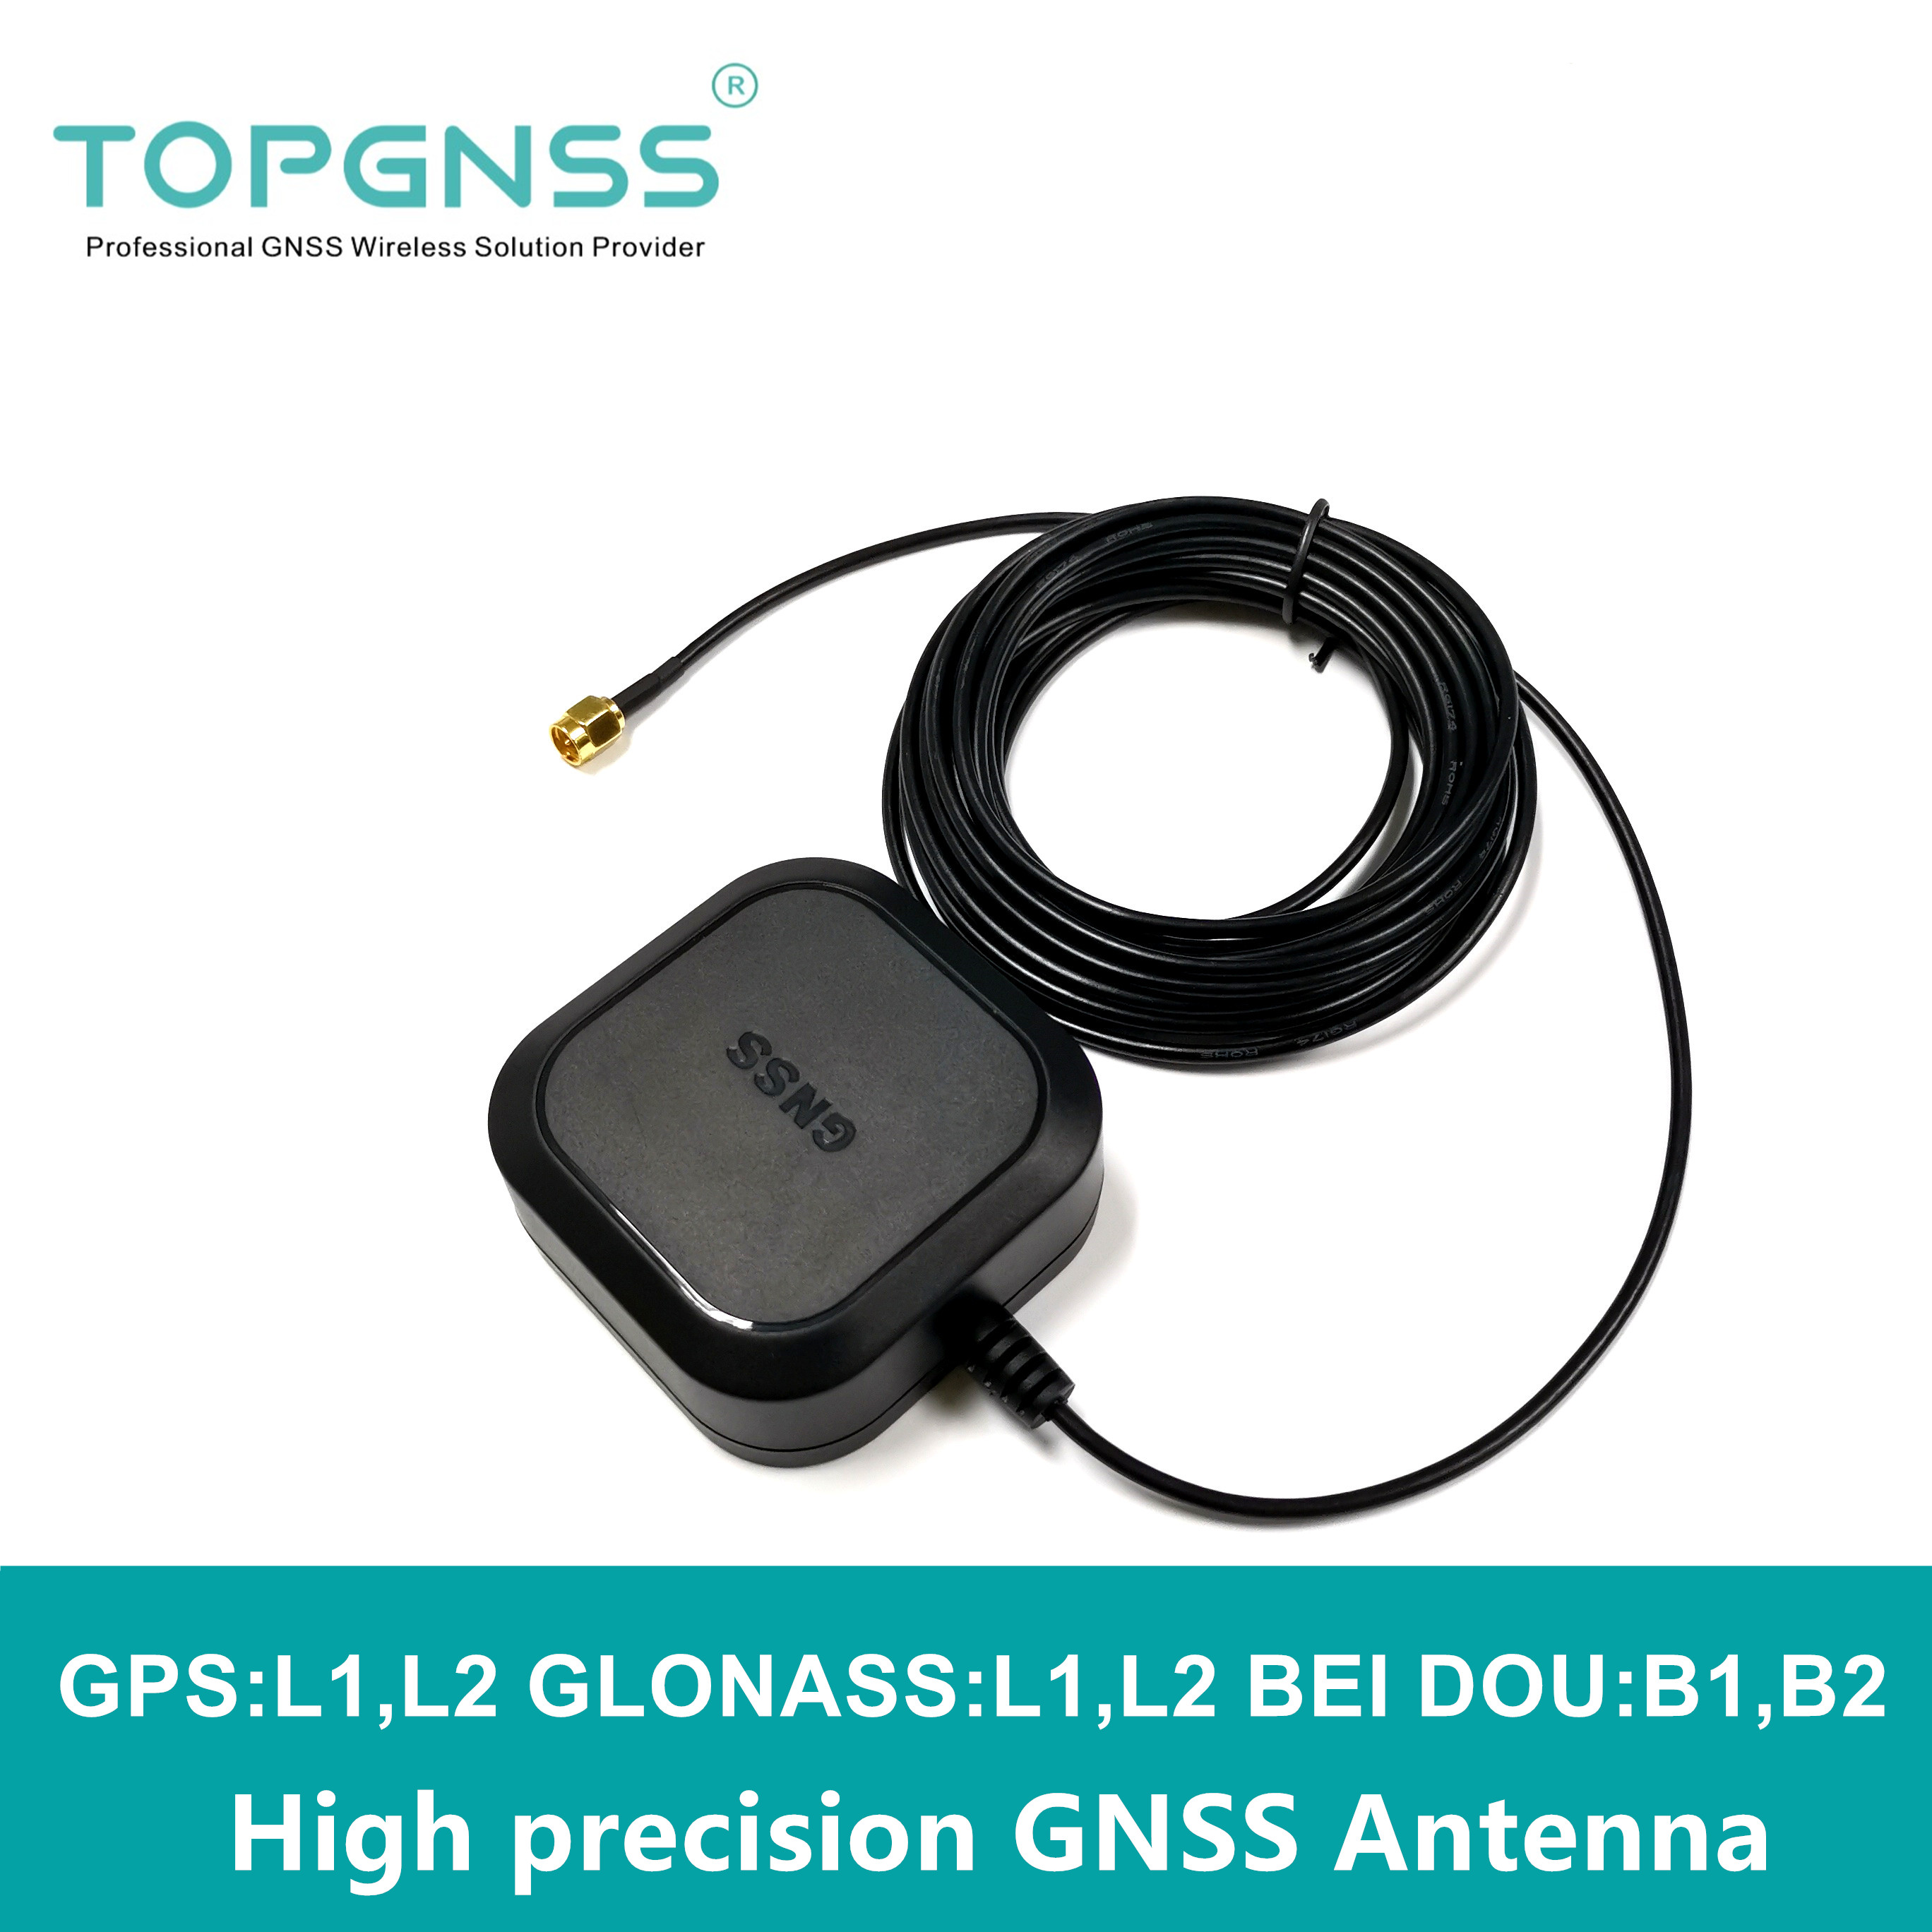 NEW High Precision GPS GNSS Antenna,RTK GPS Antenna,UAV-UGV High Precision Gain For ZED-F9P  ANN-MB-00 RTK Antenna BEIDOU,SMA-J